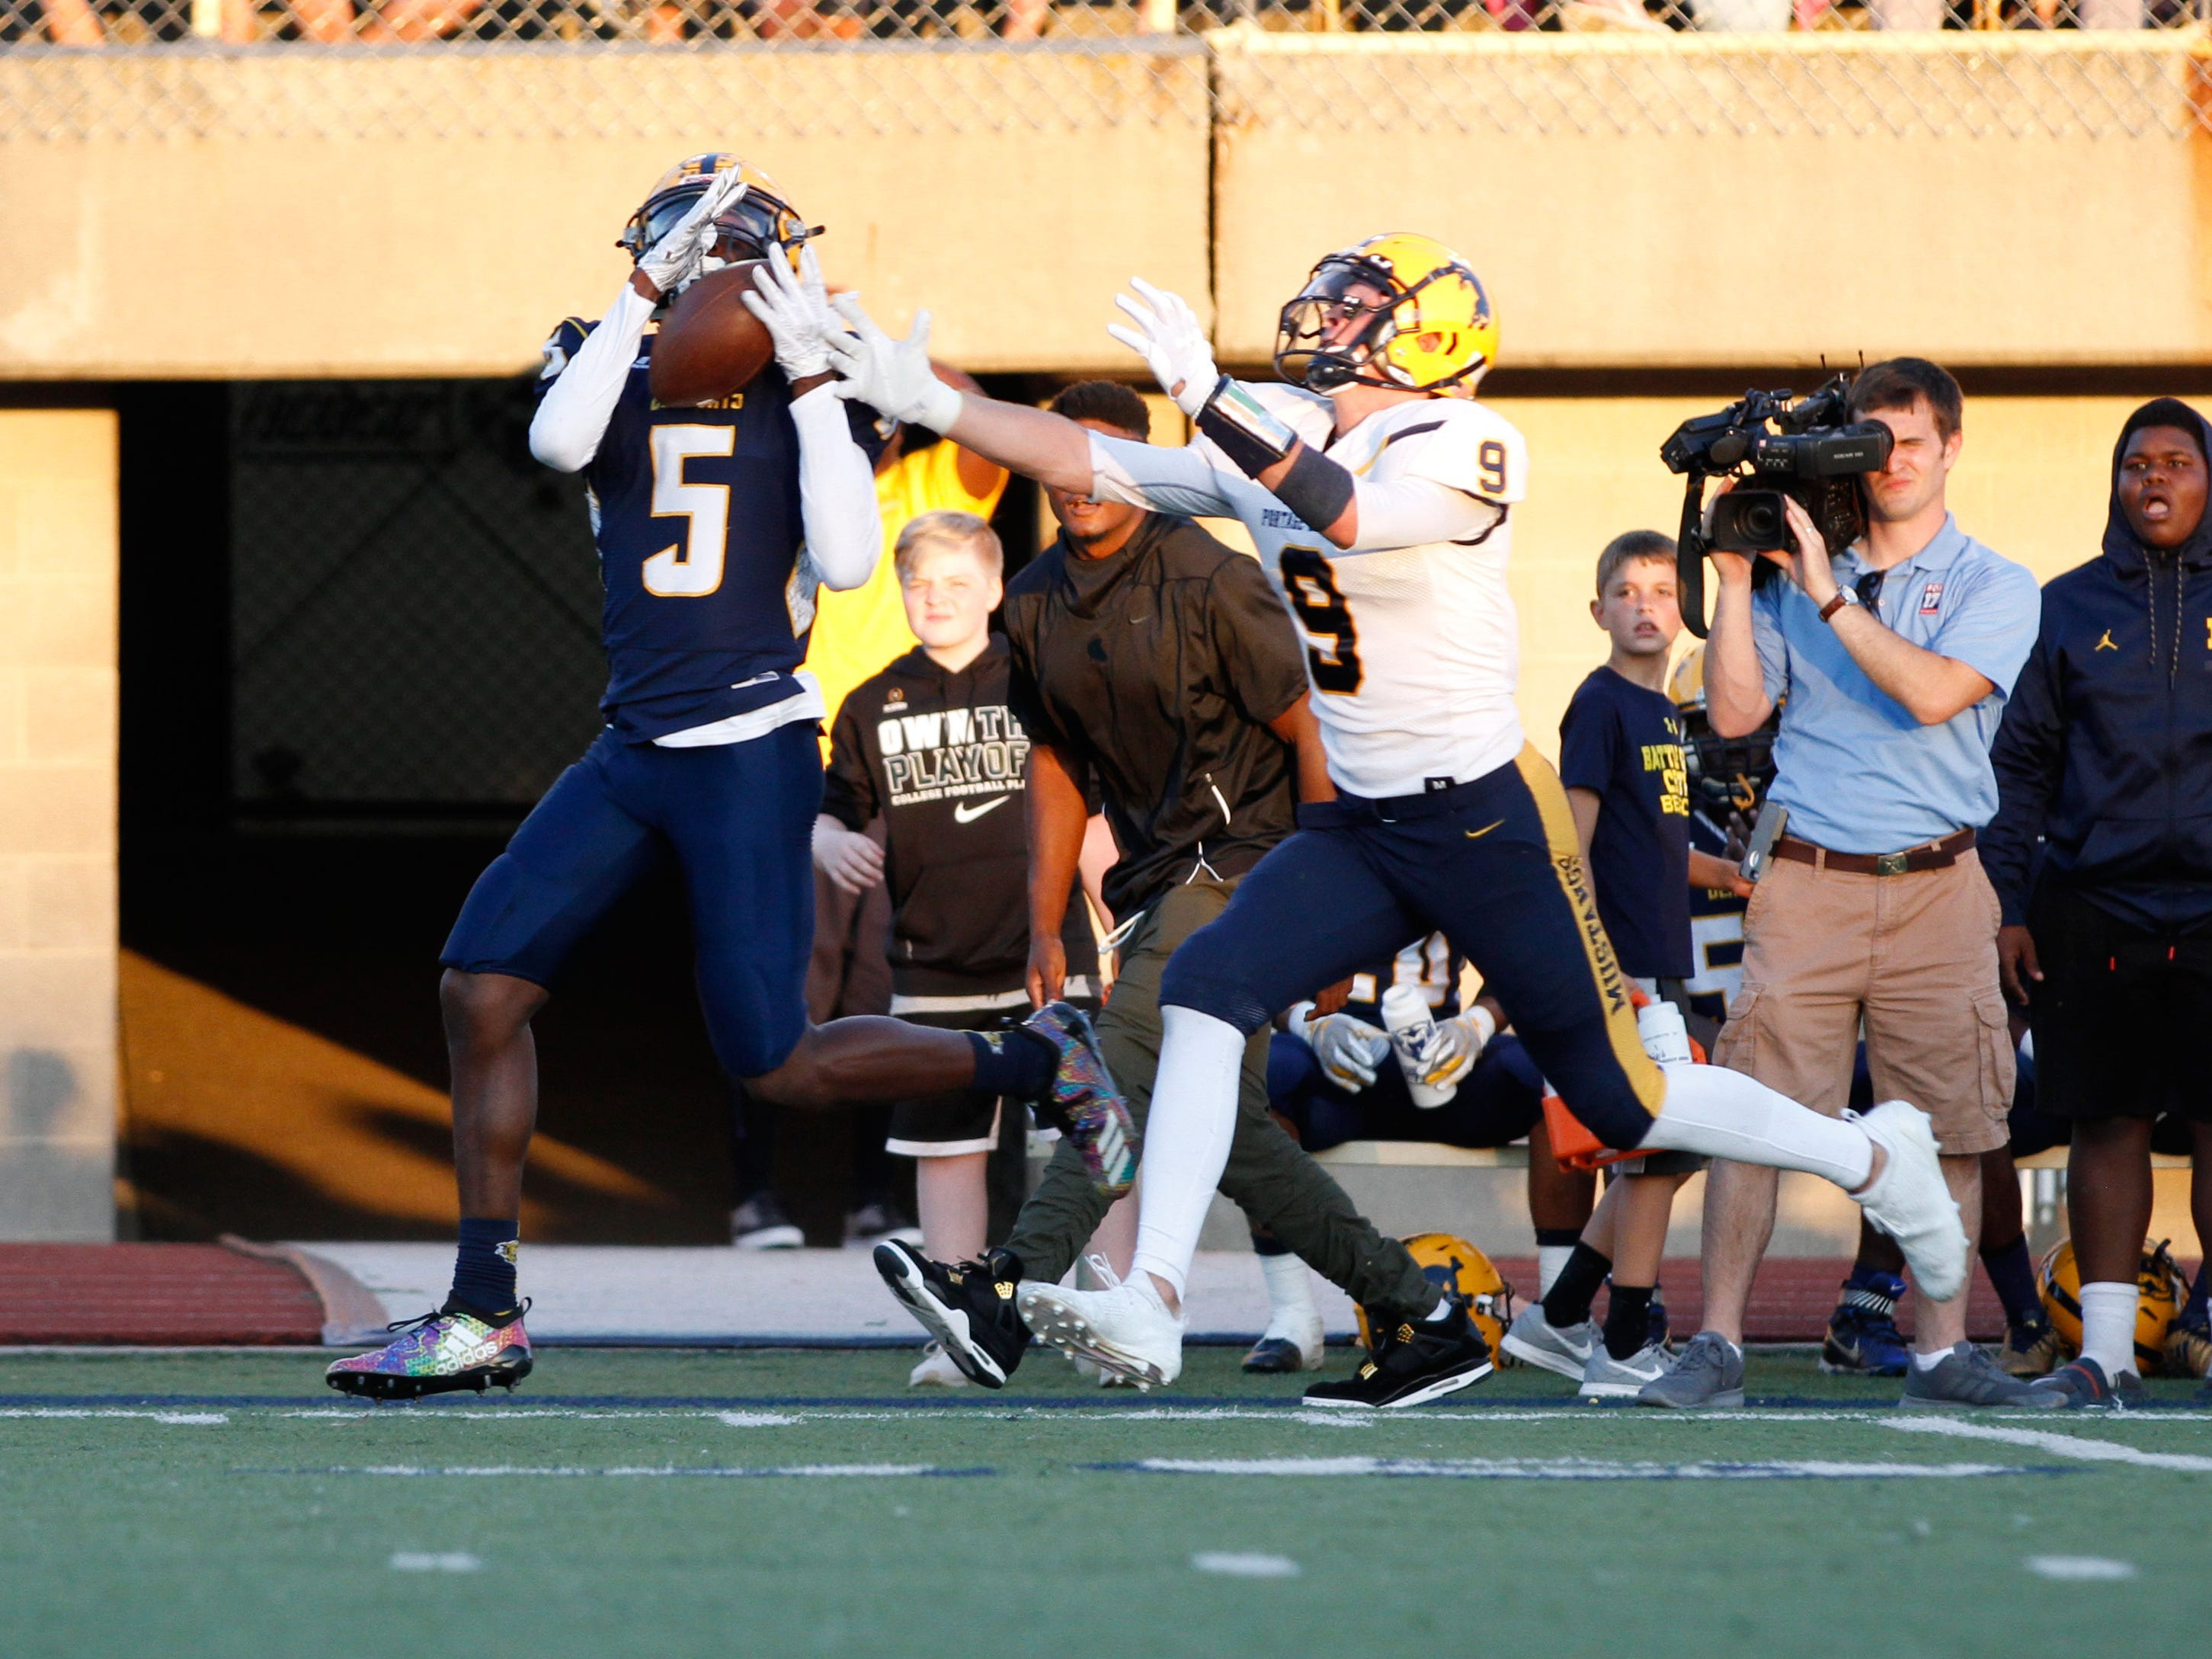 Battle Creek Central's KeOndre Glass makes a catch over Luke Leto of Portage Central in first half action.